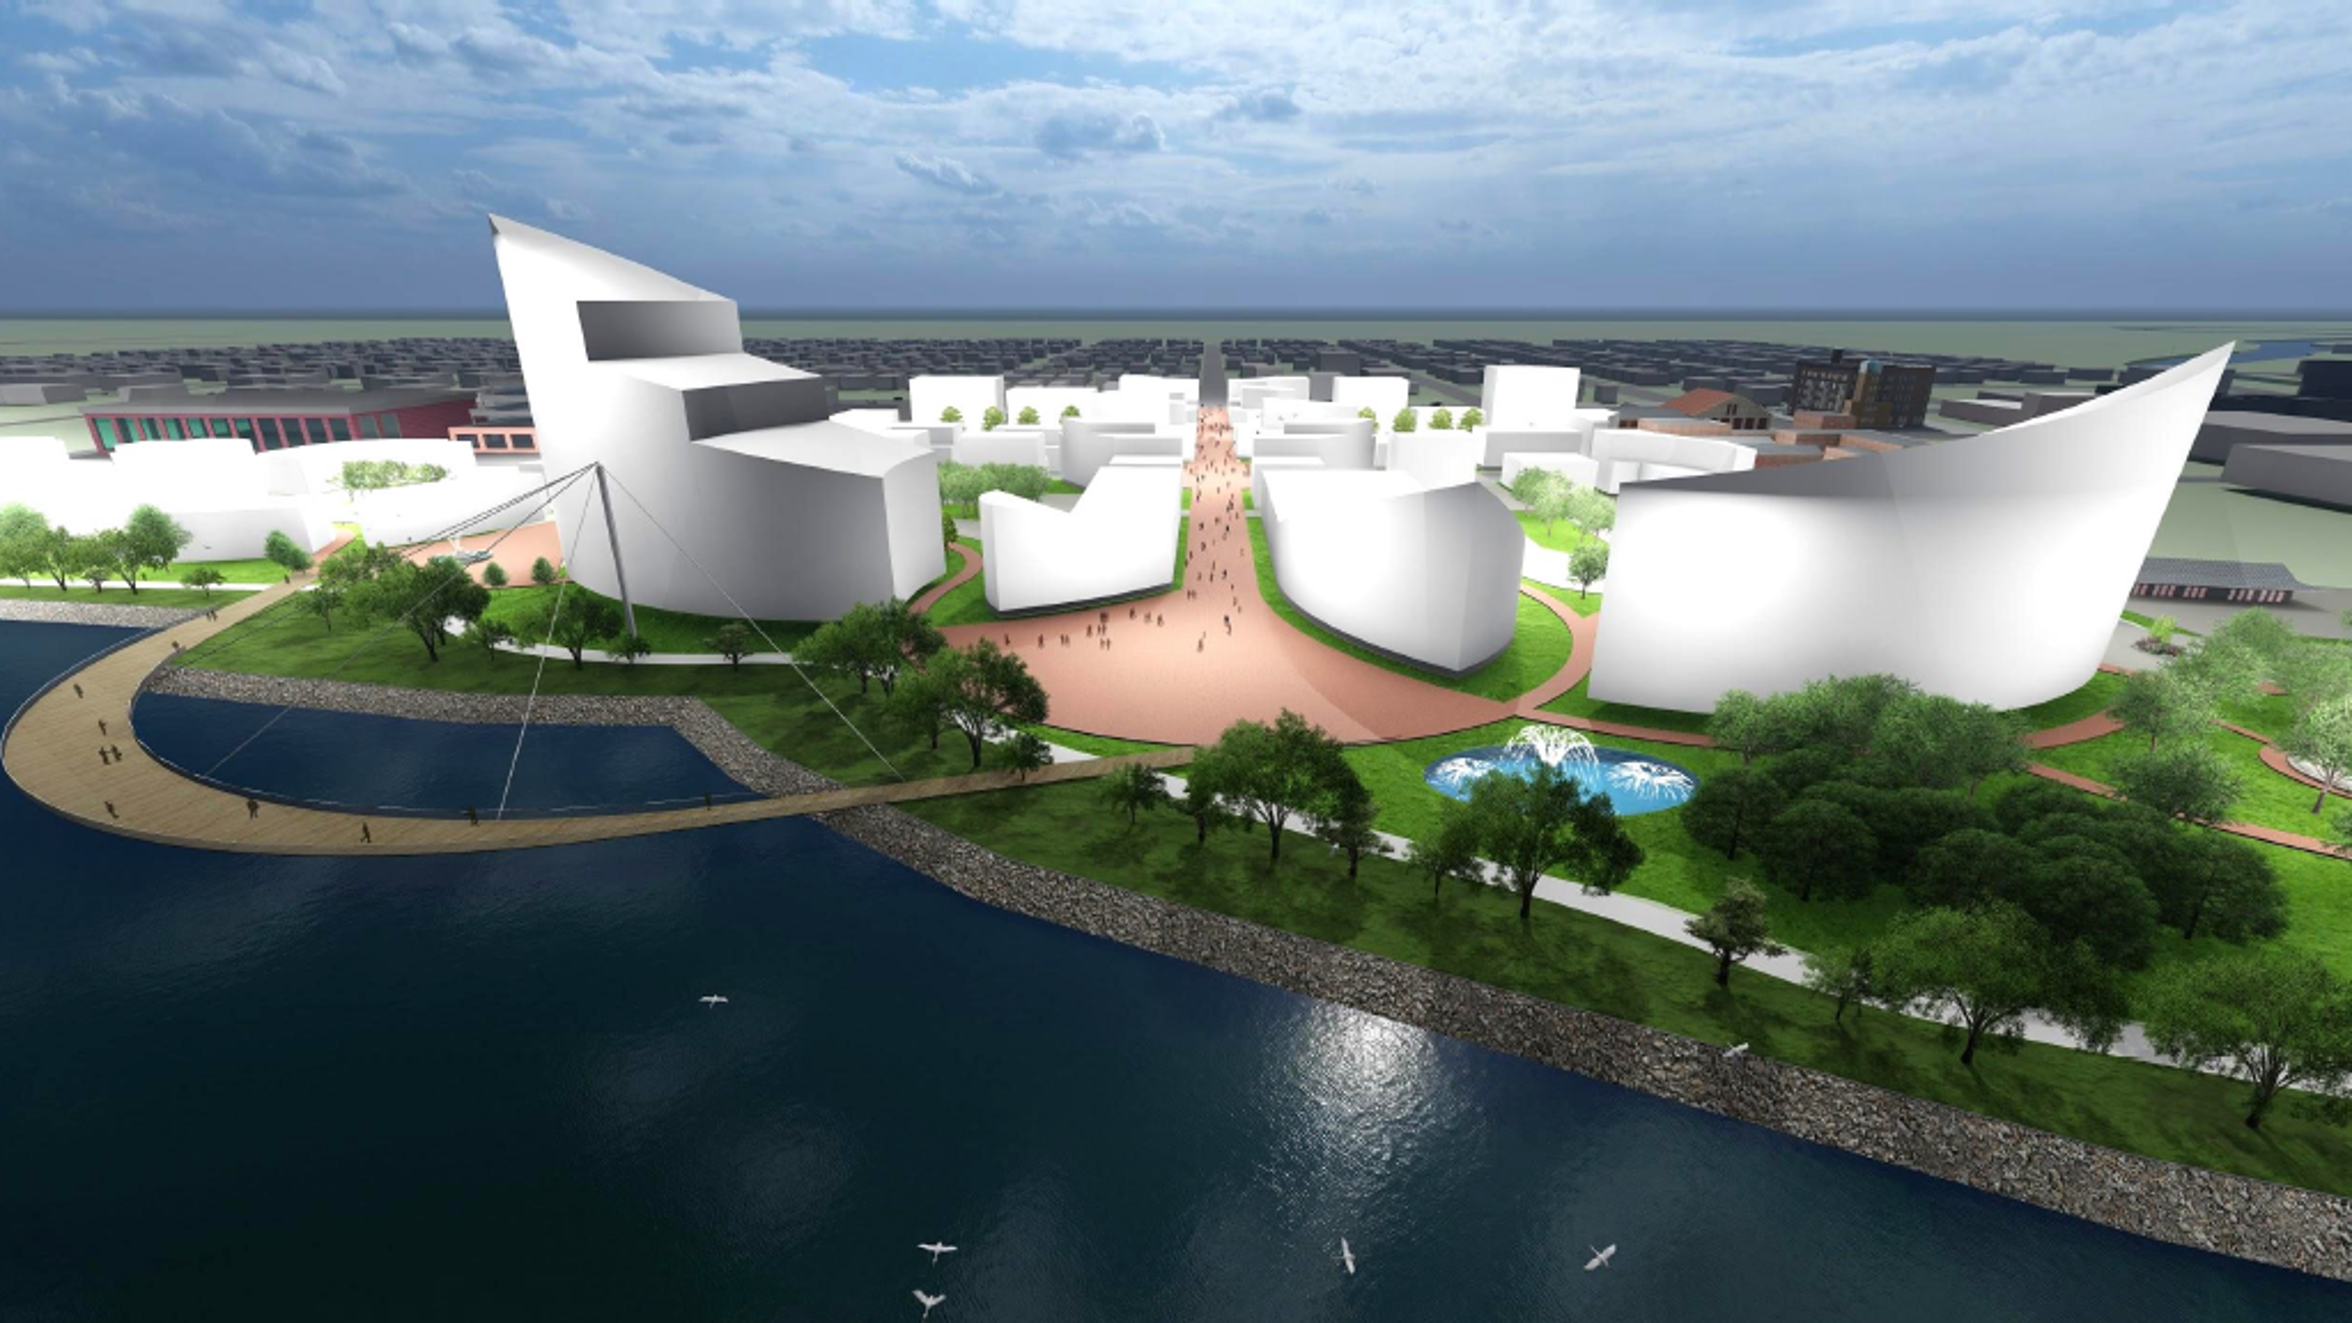 A study commissioned by the Economic Development Alliance of St. Clair County, the city of Port Huron and Acheson Ventures, which owns Desmond Landing on the St. Clair River, shows conceptual plans to show to developers that include hotel and entertainment, residential and other mixed-use buildings.